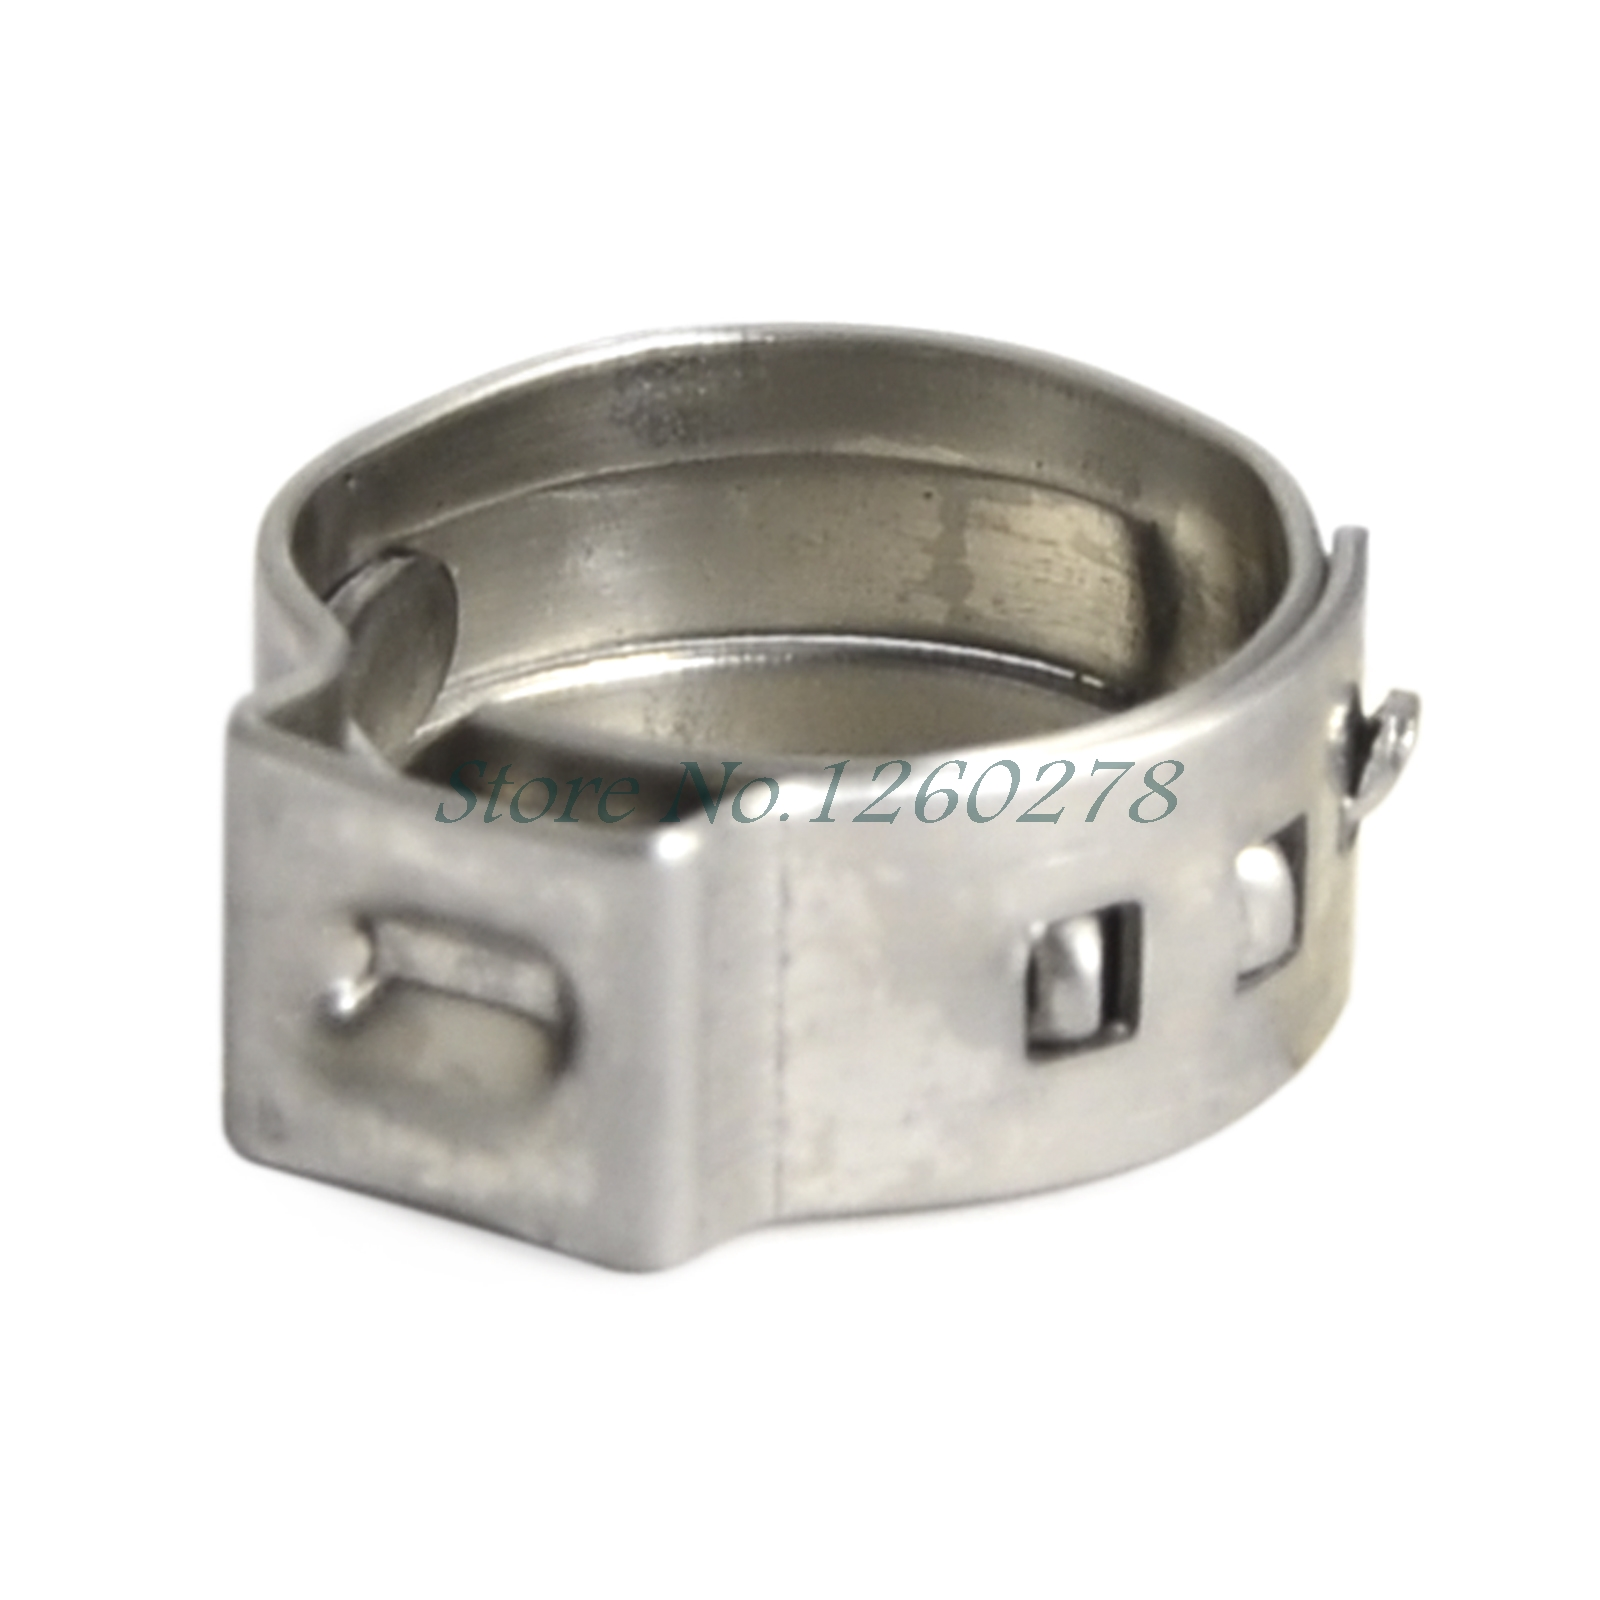 Stainless steel hose pipe clamp cinch ring crimp pinch